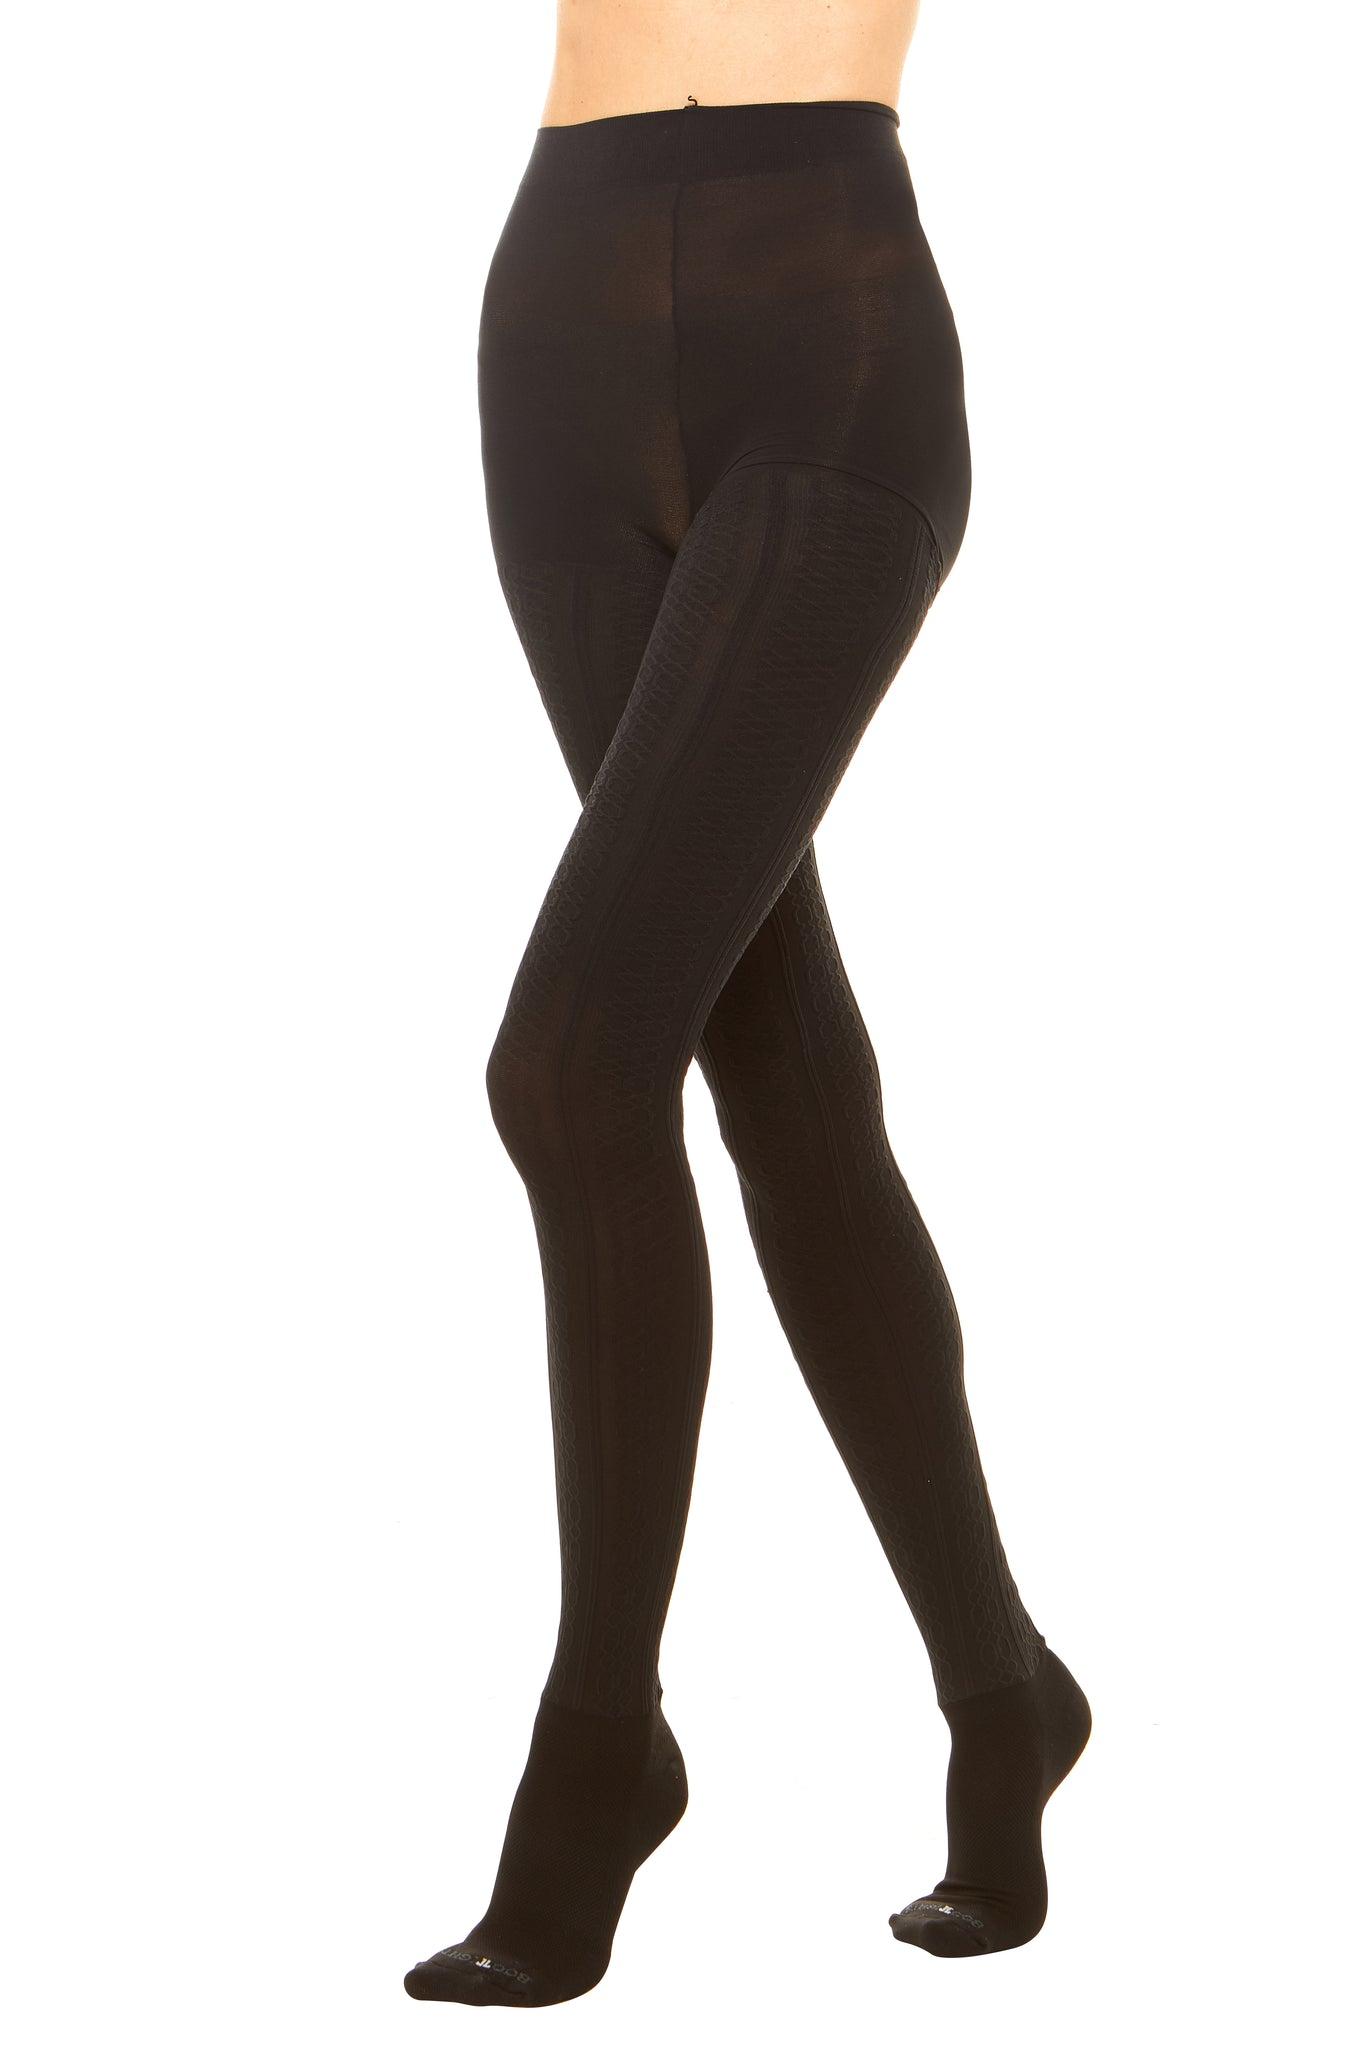 Premium semi opaque women's tights in a cable knit pattern with attached performance athletic socks and tummy control waistband